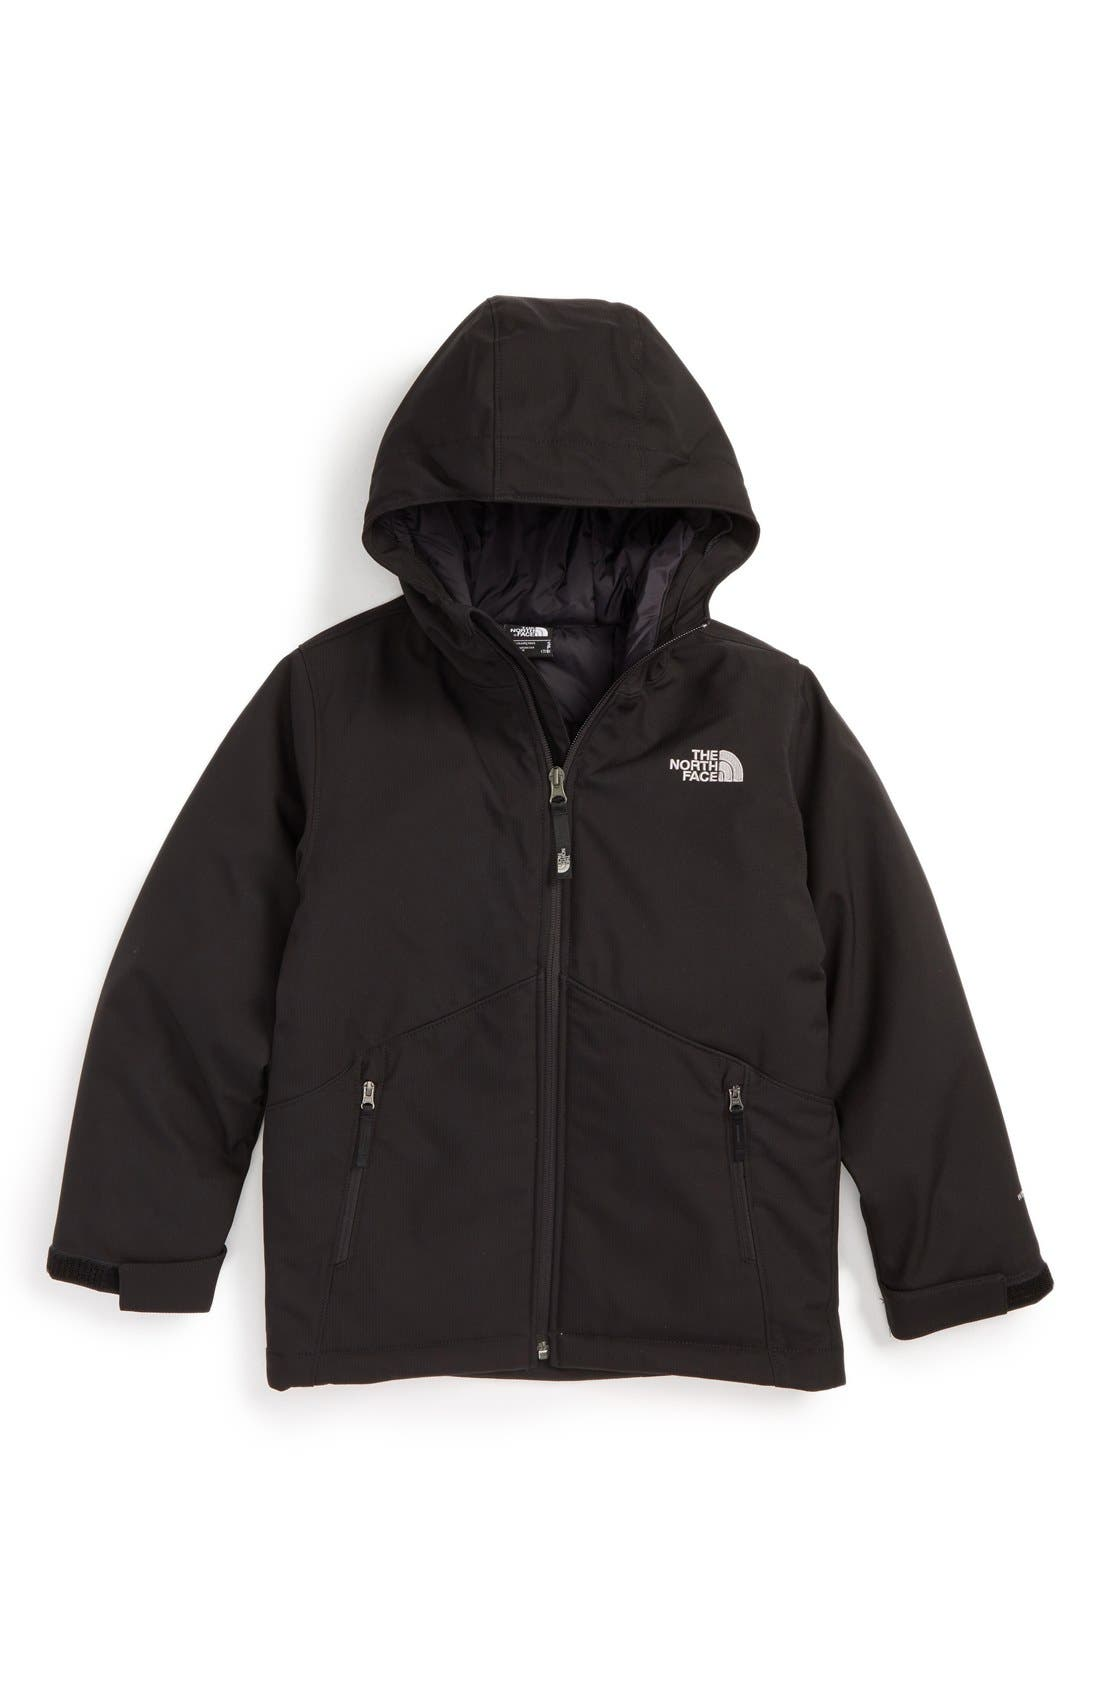 Alternate Image 1 Selected - The North Face 'Apex Elevation' Hooded Jacket (Big Boys)